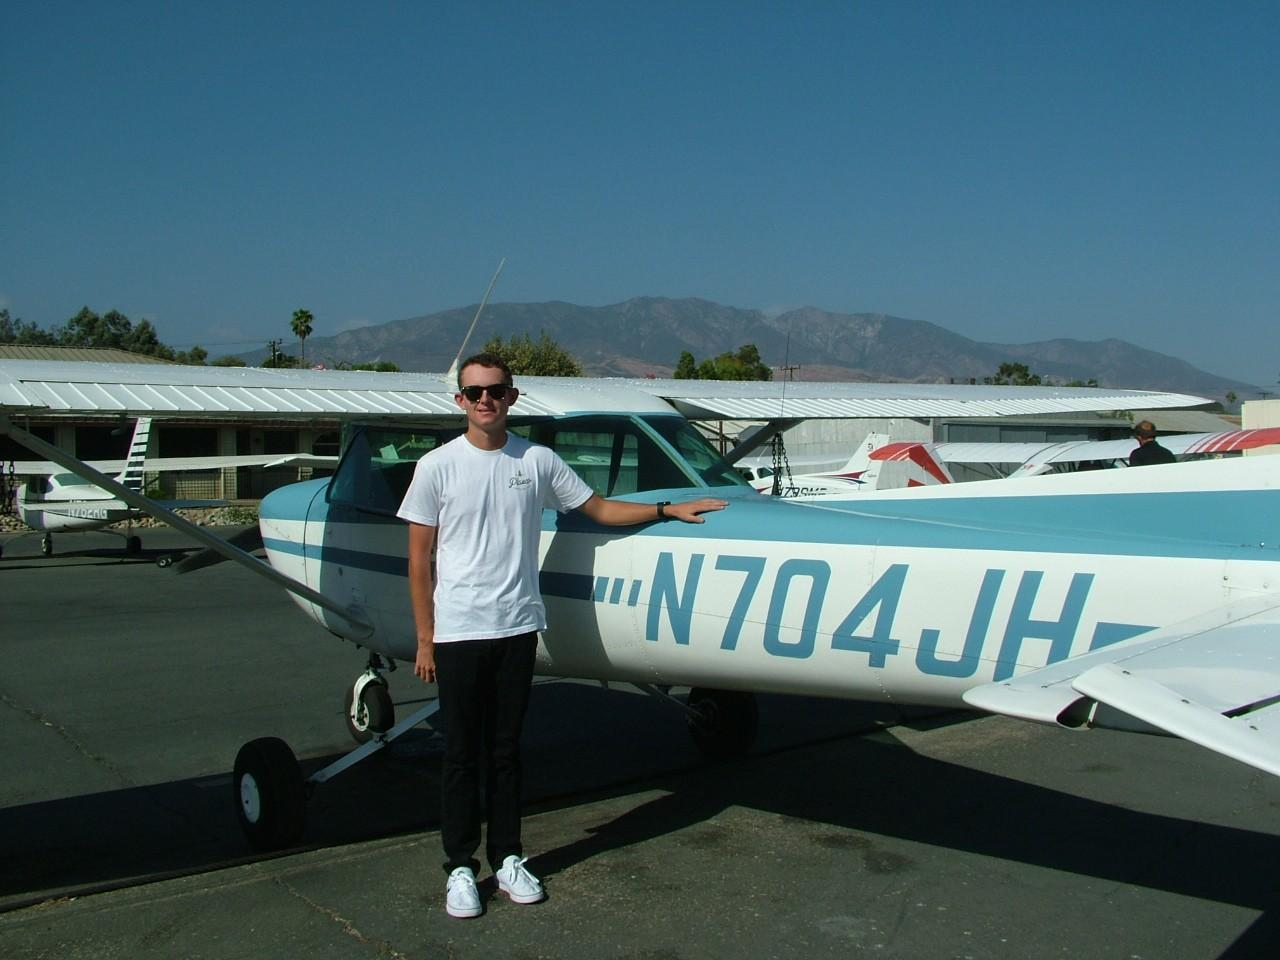 First Solo - Connor Philpott